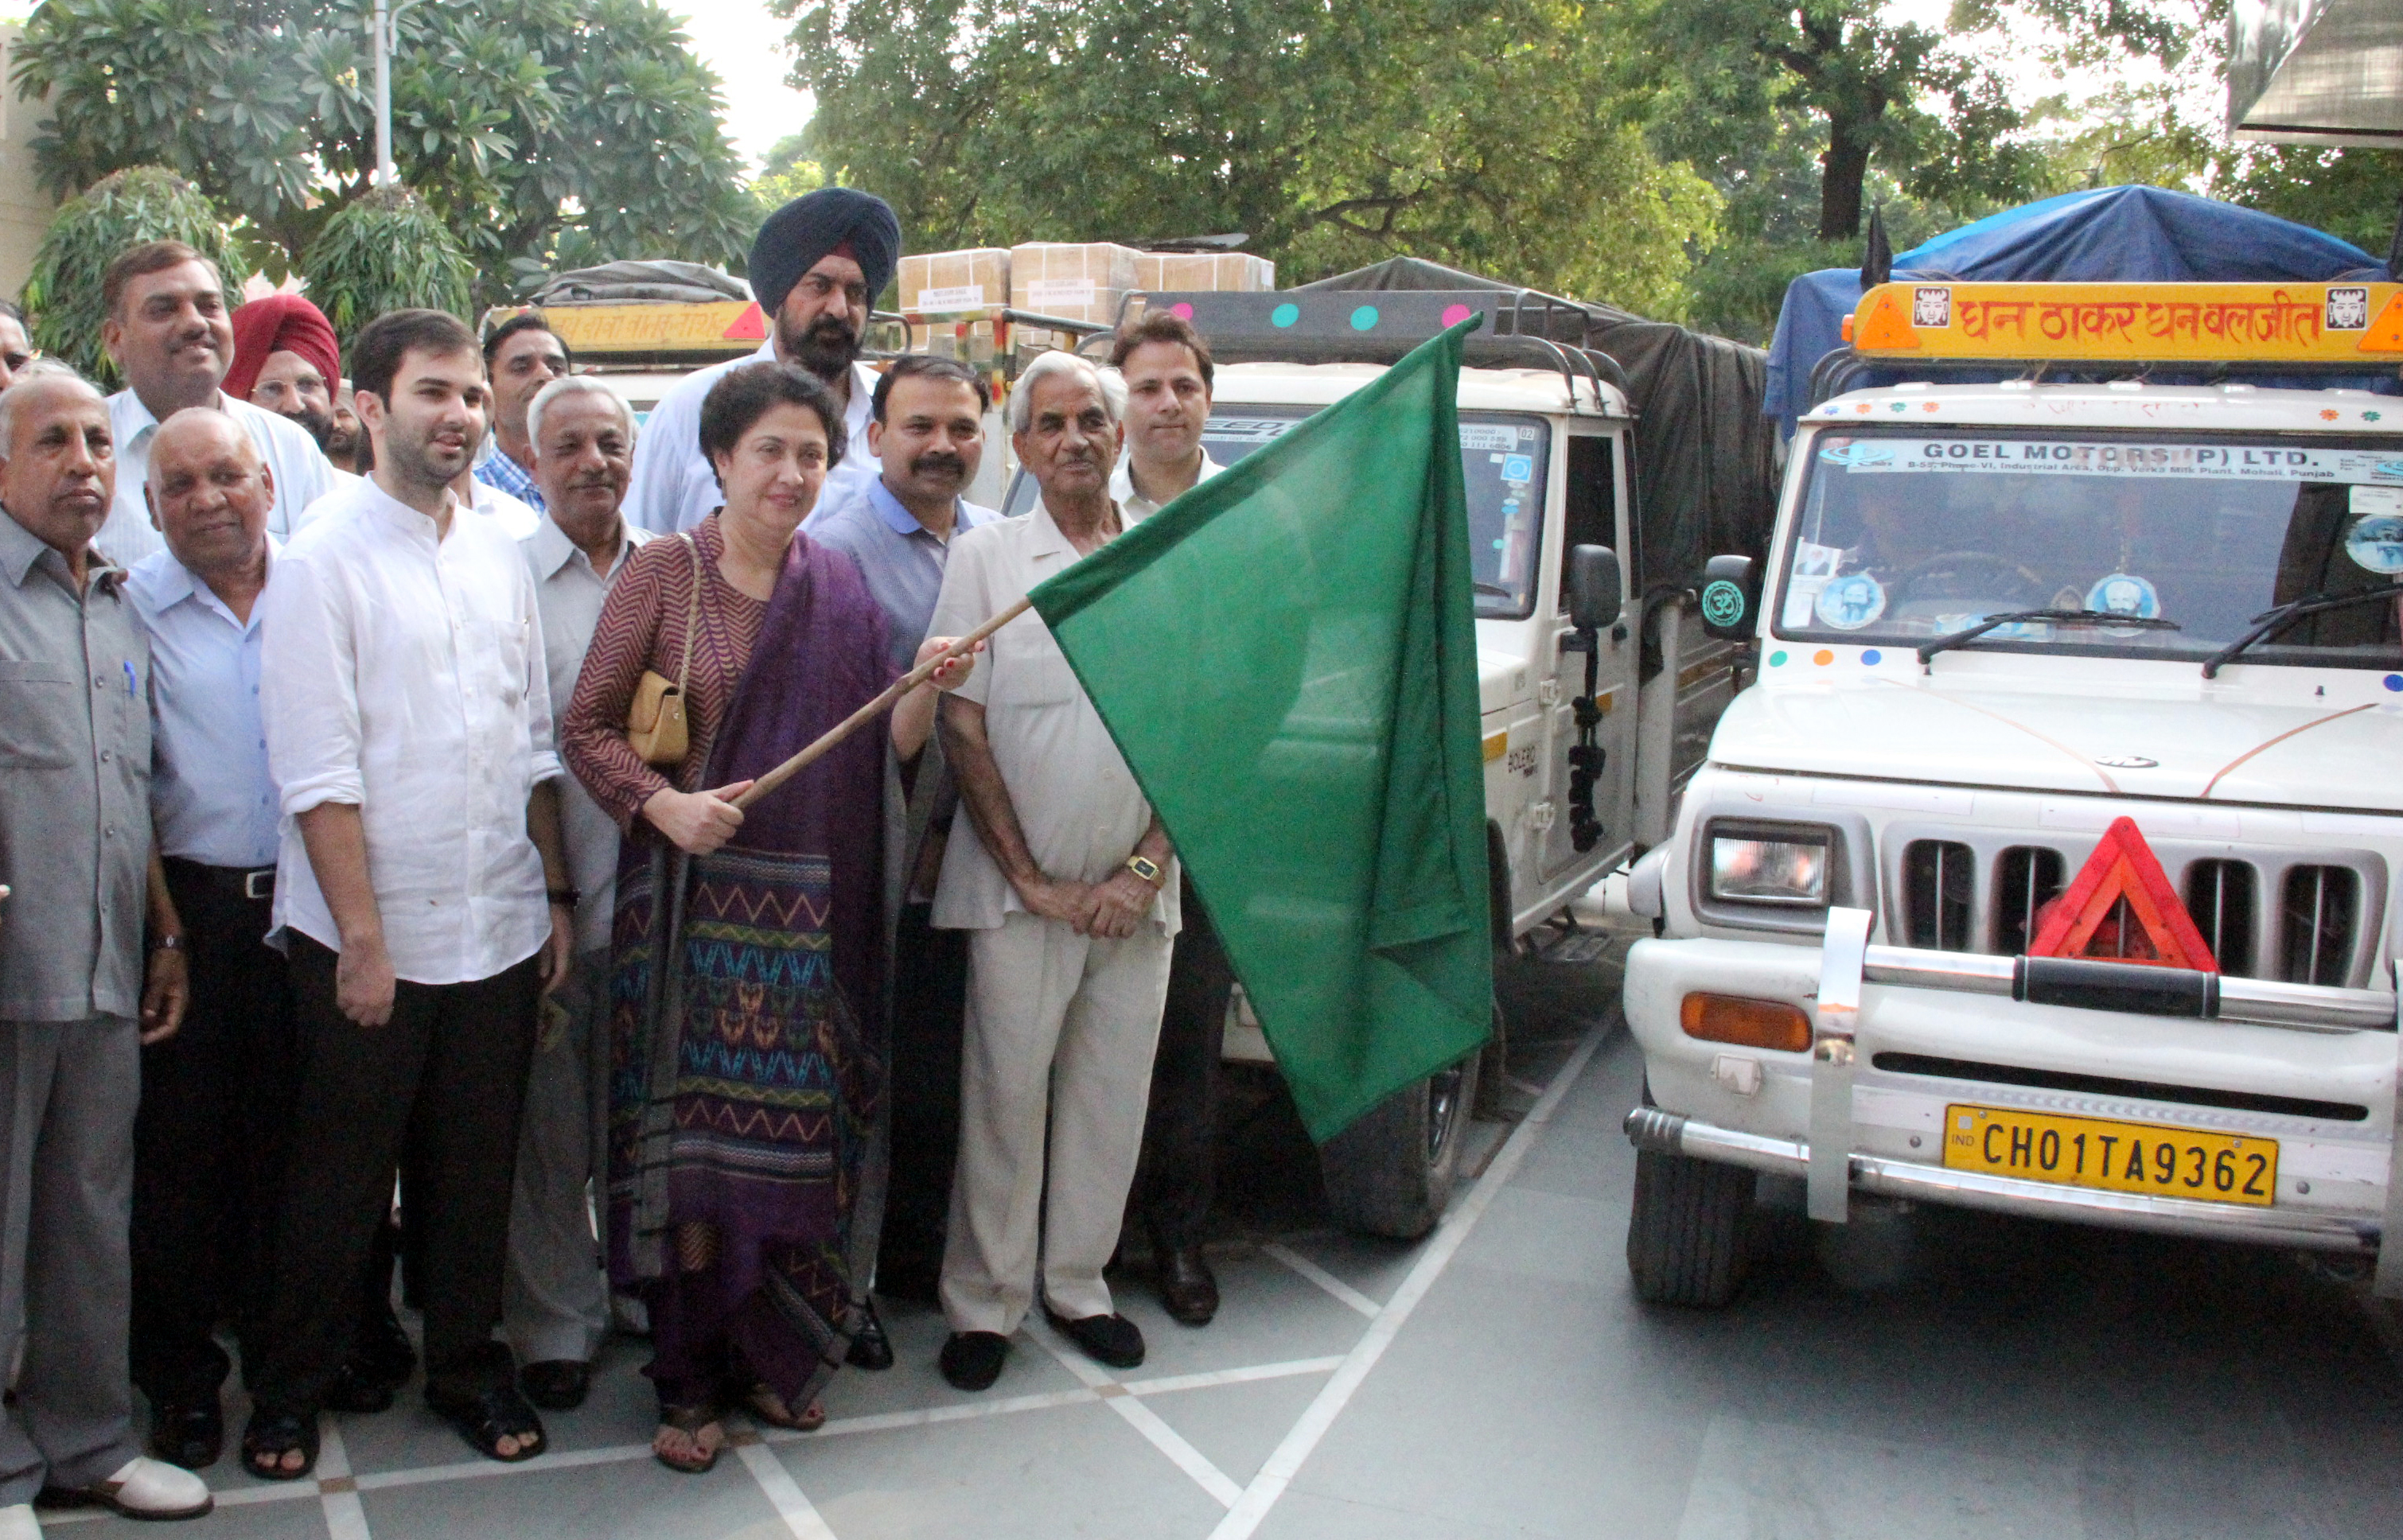 Mrs. Ninette Vas Sharma, Vice President of Indian Red Cross Society, Chandigarh w/o Mr. K.K. Sharma, Adviser to the Administrator, UT, Chandigarh flagging off three trucks containing assistance for flood effected persons in Jammu and Kashmir at Aggarsain Bhawan, Sector-30, Chandigarh on Thursday, September 18, 2014.